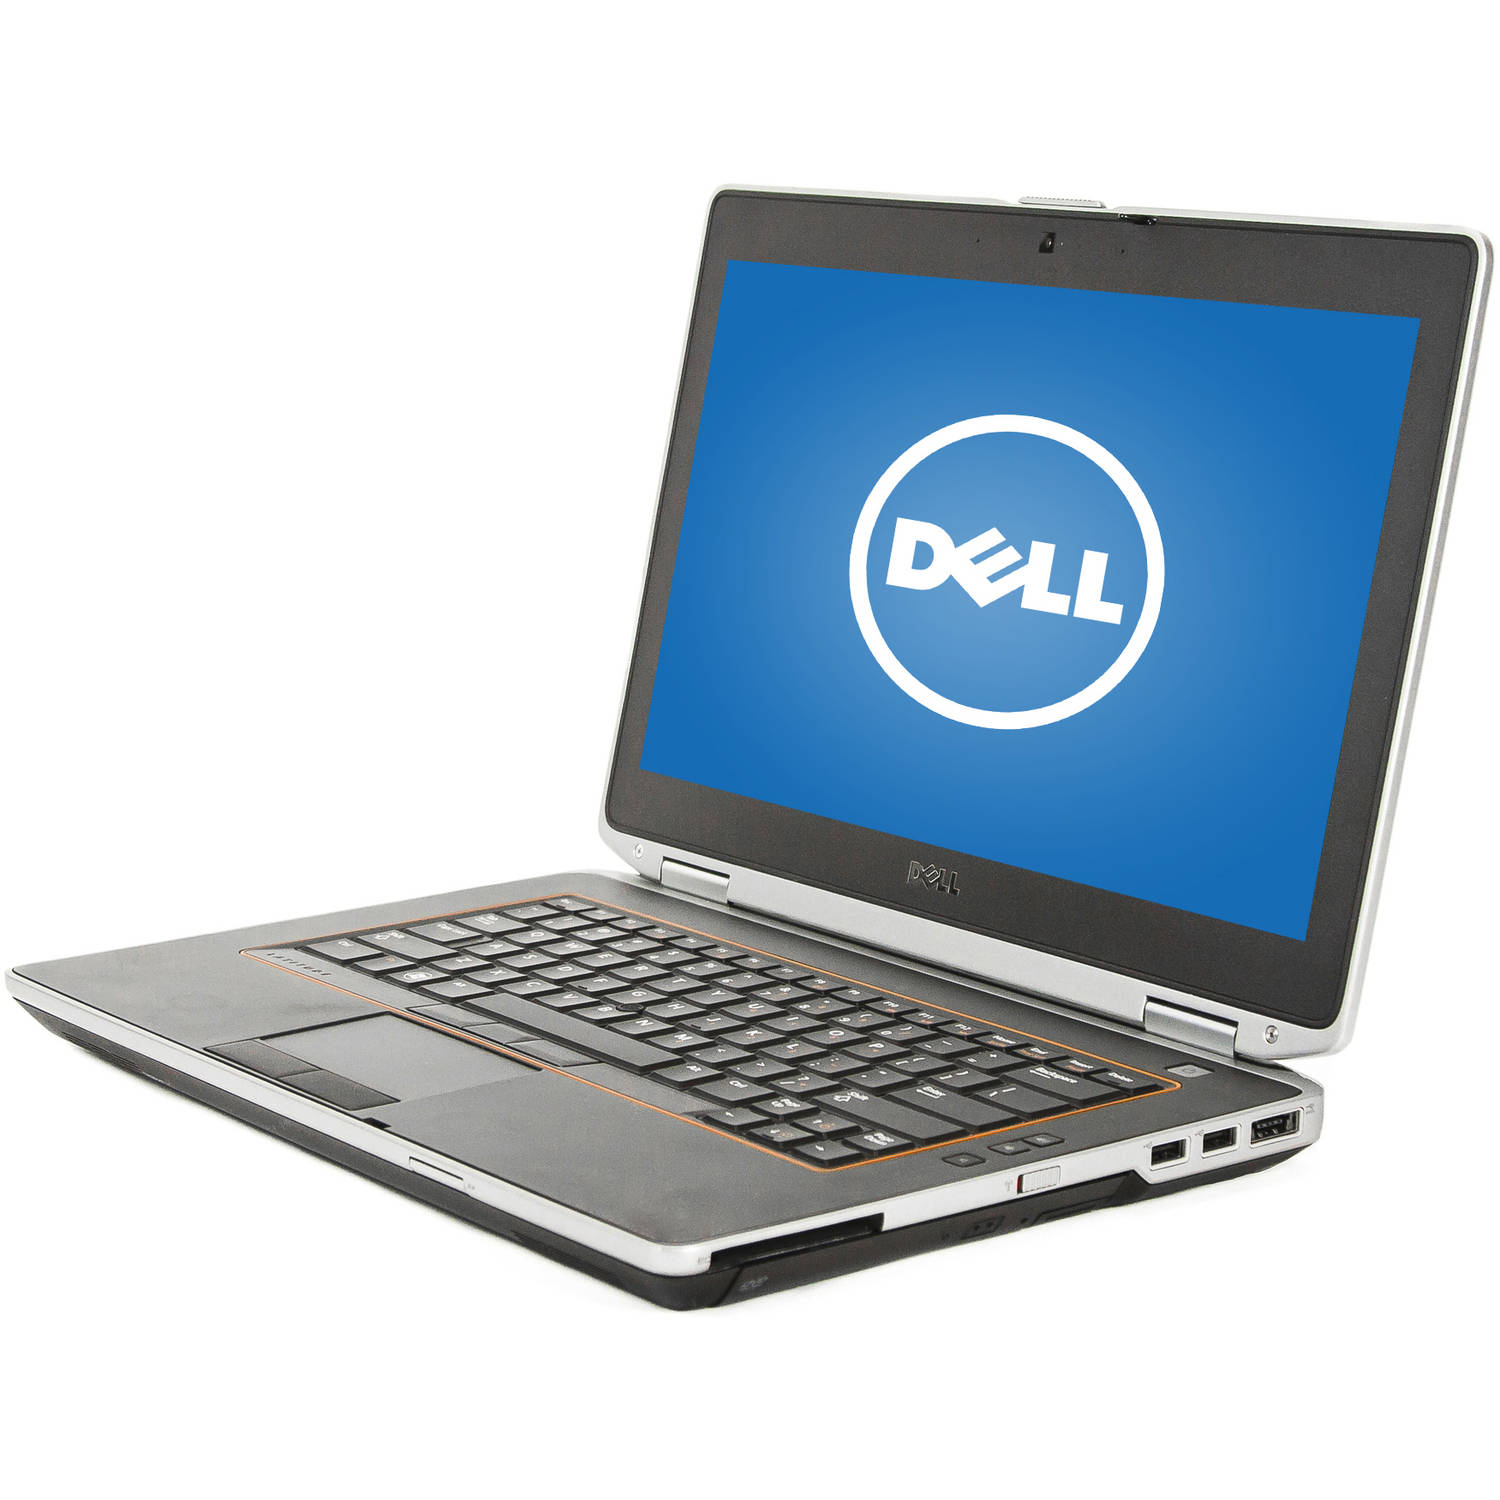 "Refurbished Dell 14"" E6420 Laptop PC with Intel Core i5 Processor, 4GB Memory, 320"